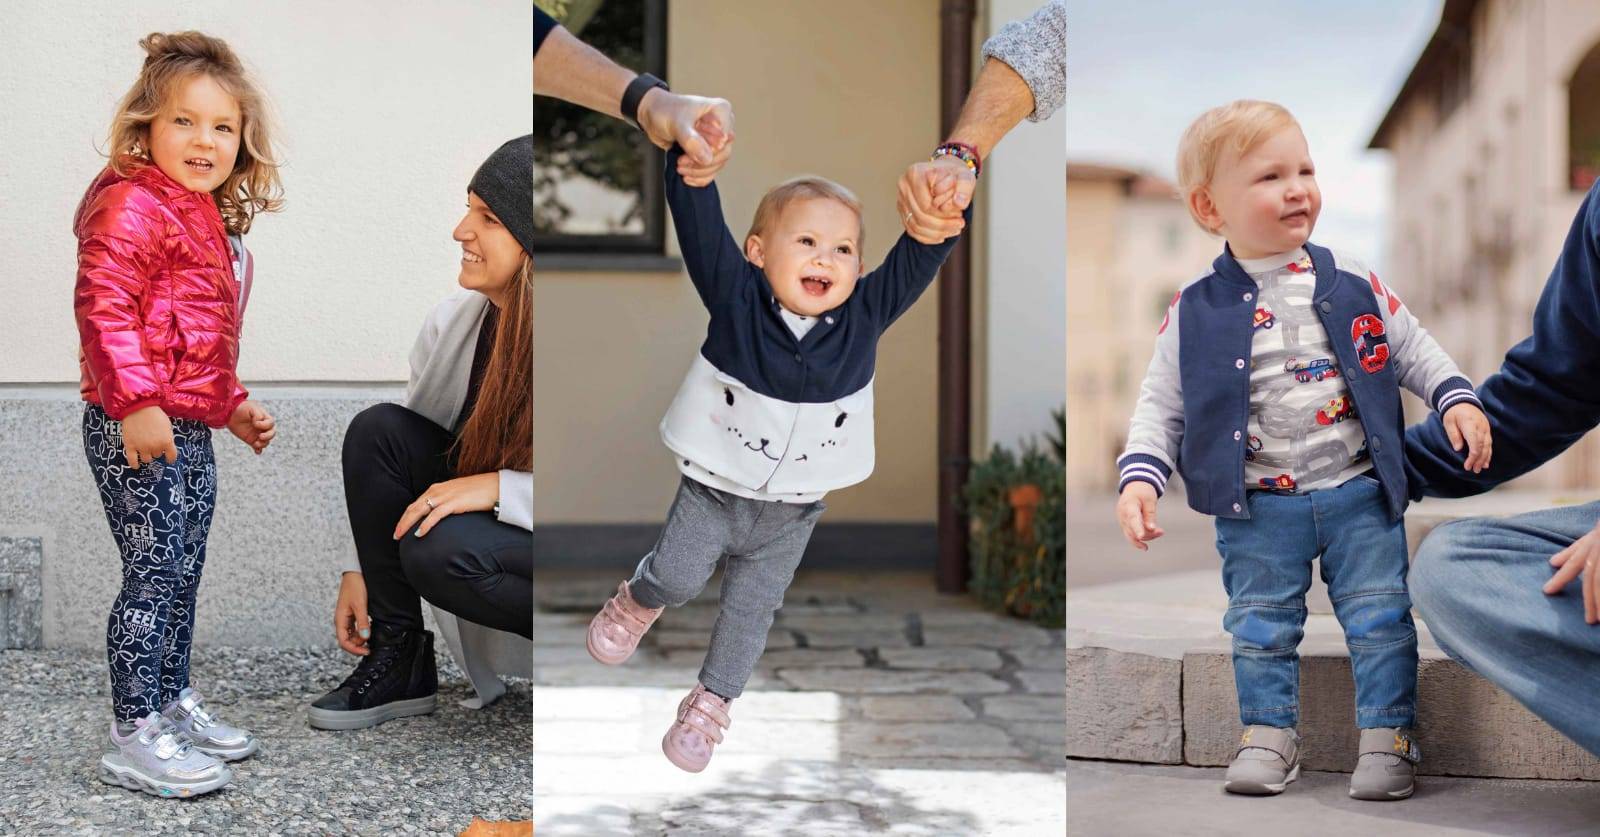 CHICCO INDIA LAUNCHES AW'21 COLLECTION